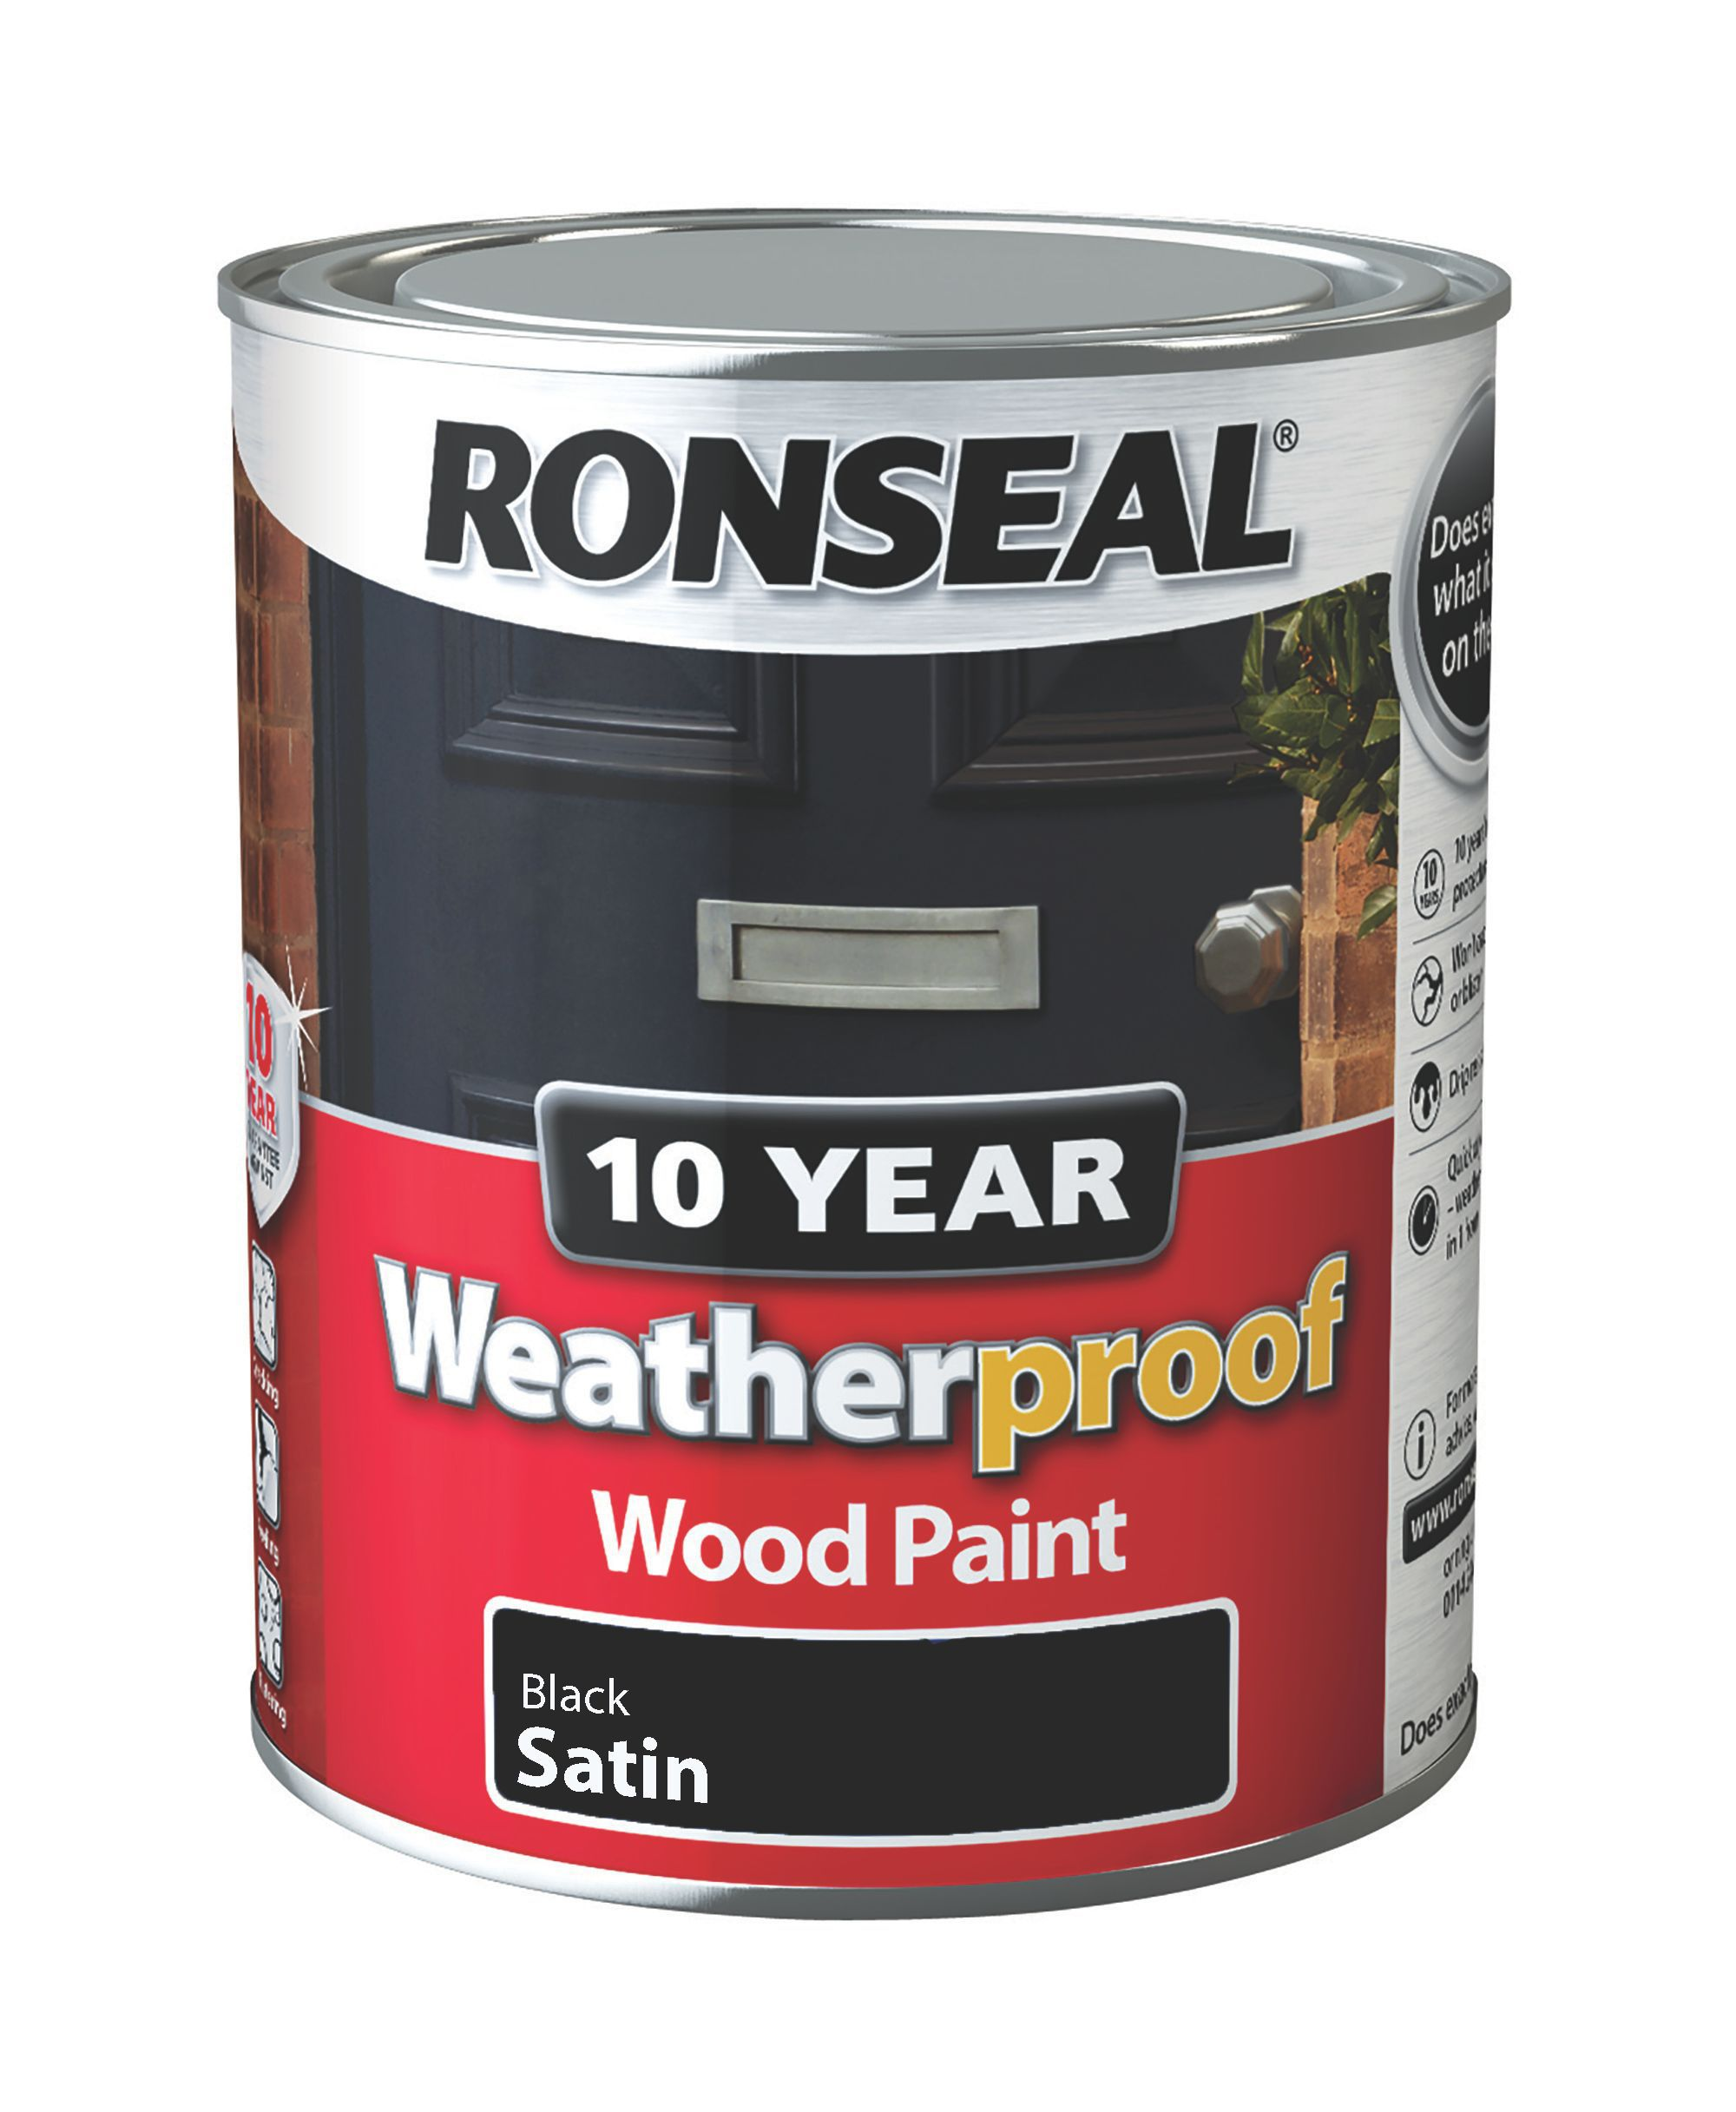 ronseal 10 year weatherproof black satin wood paint 750ml departments diy at b q